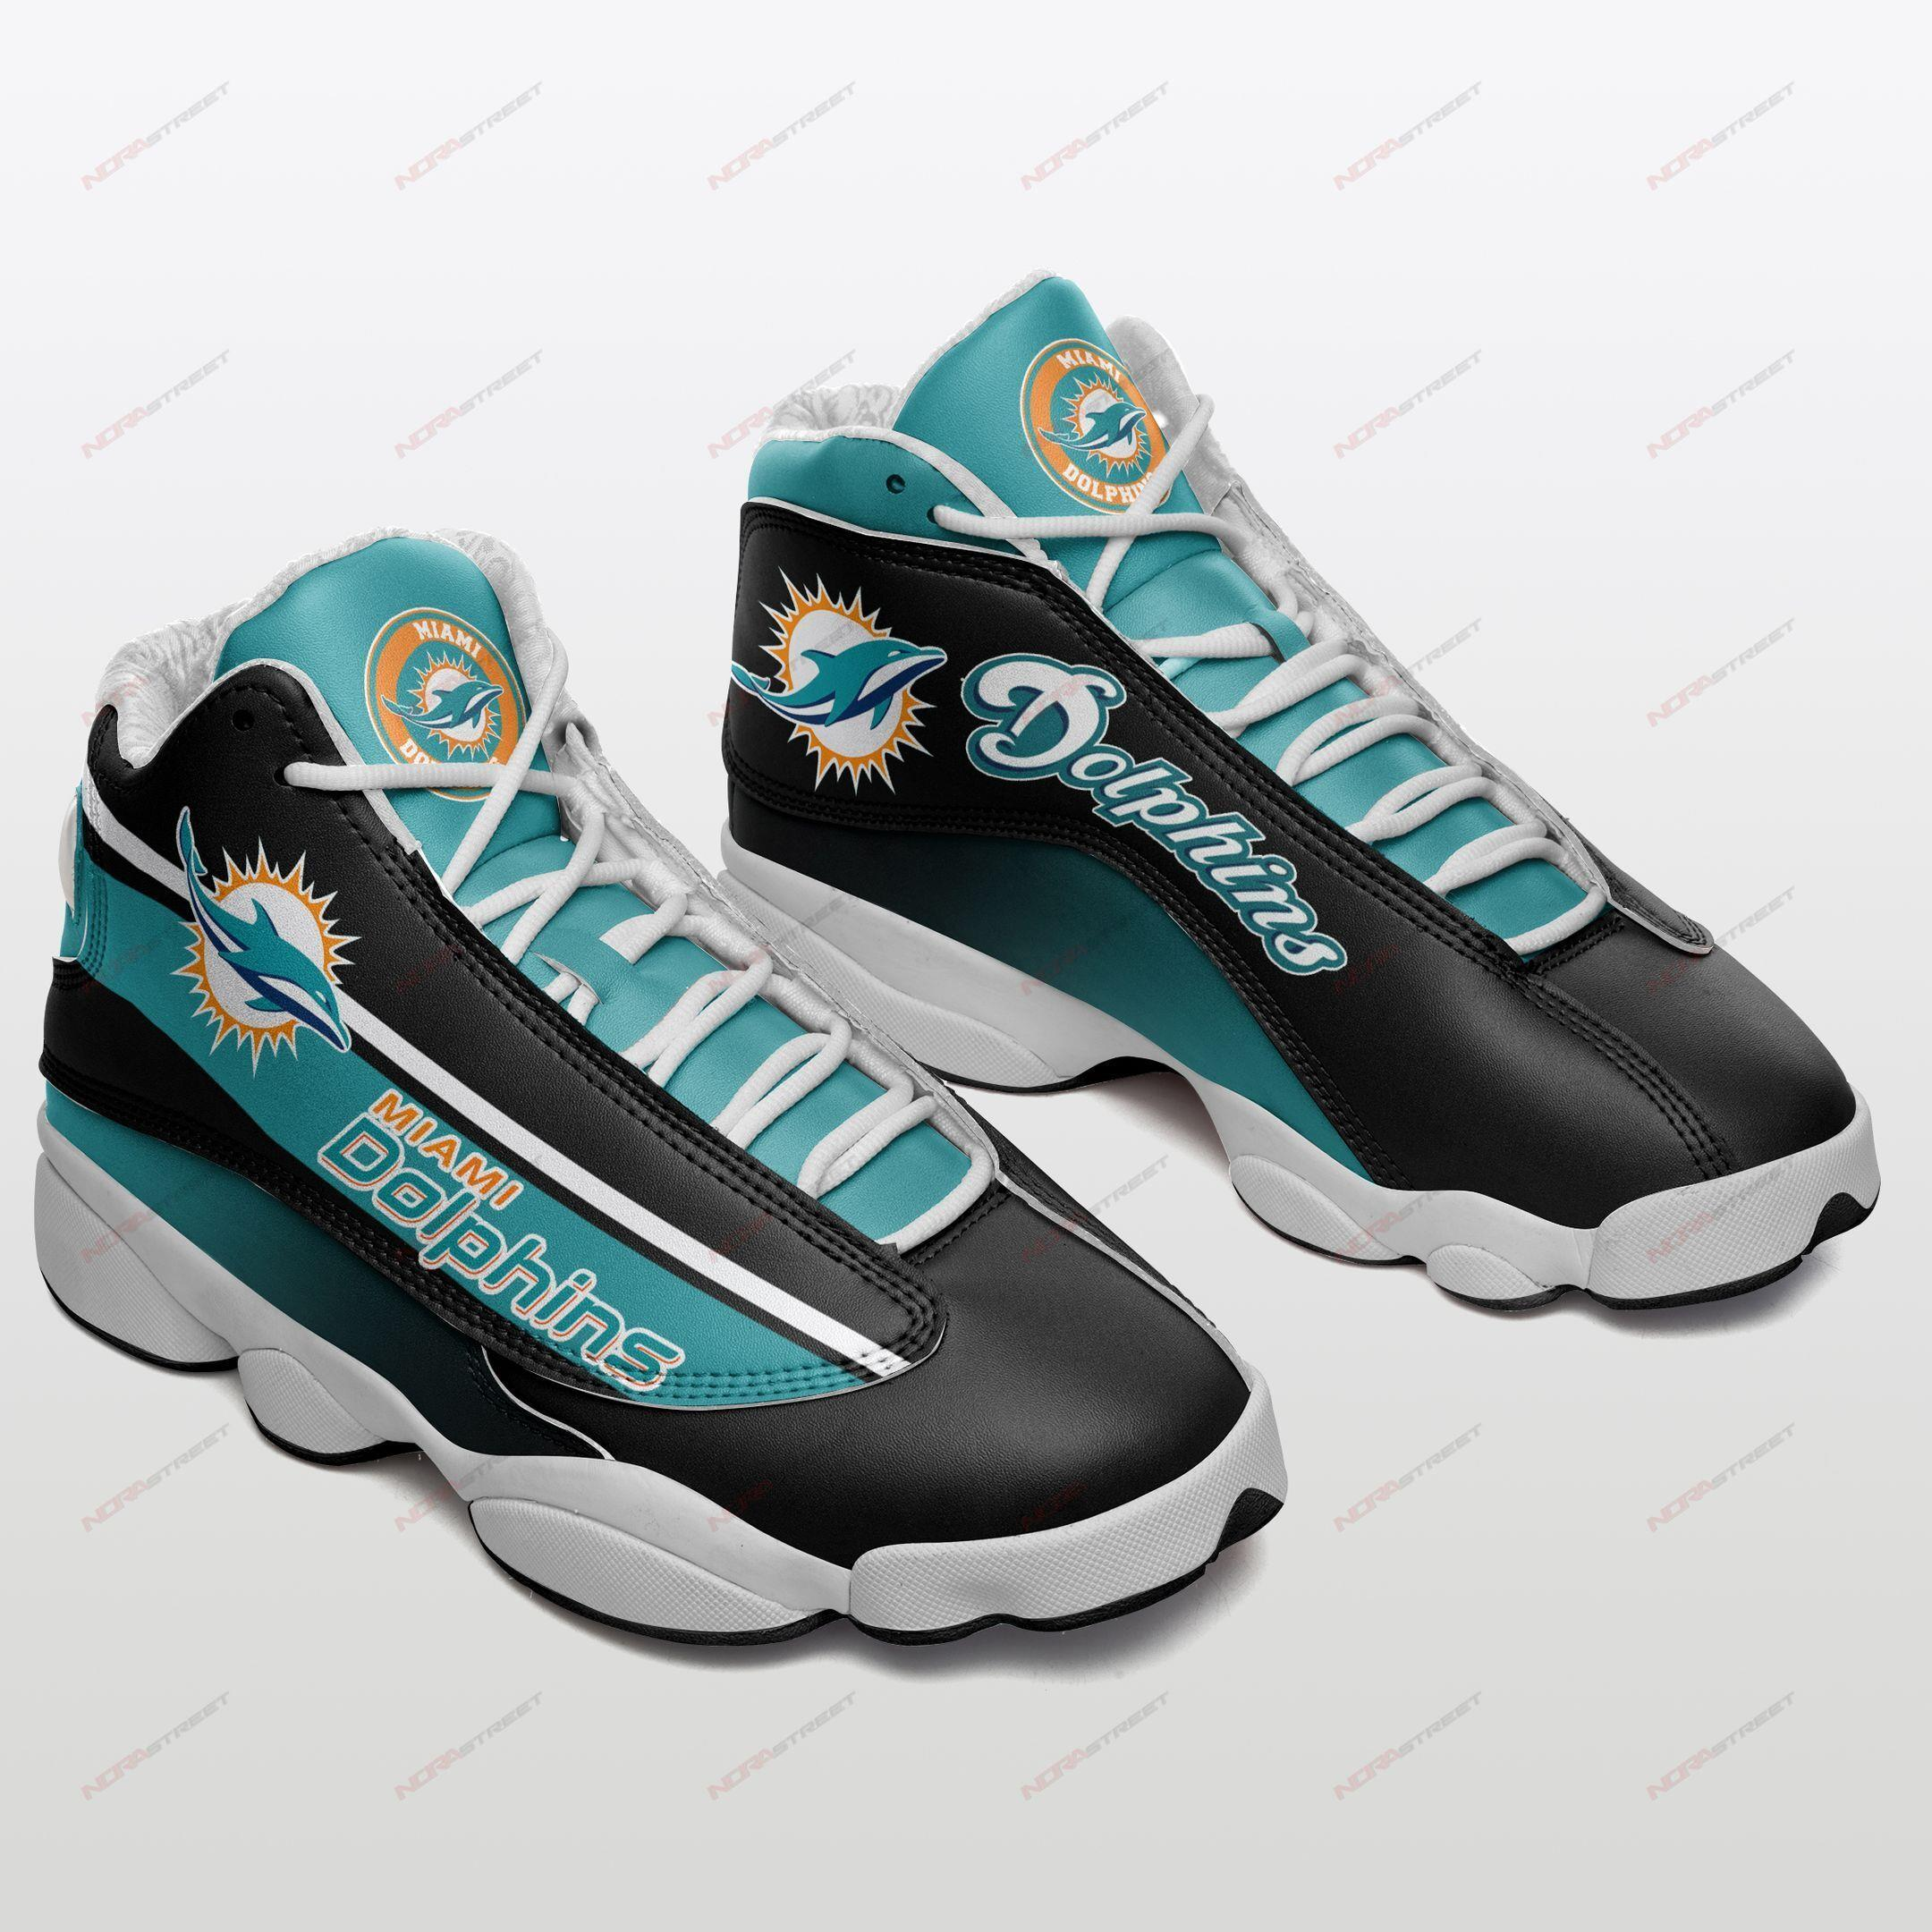 Miami Dolphins Air Jordan 13 Sneakers Sport Shoes Plus Size